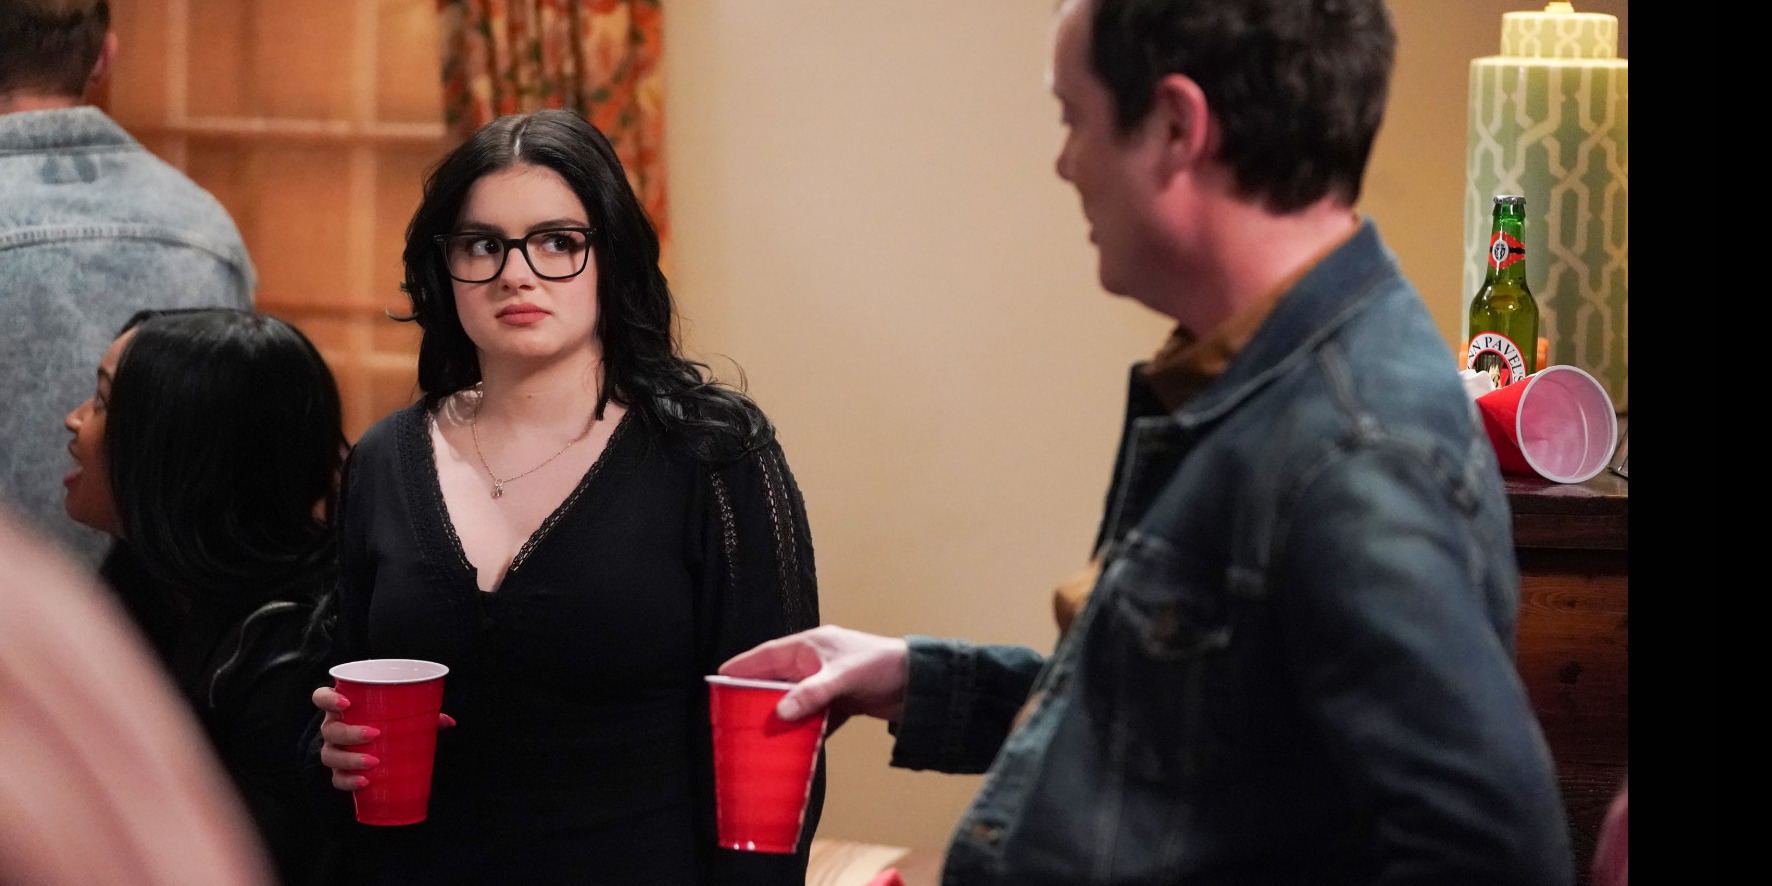 'Modern Family' season 11 finale episodes 17 and 18